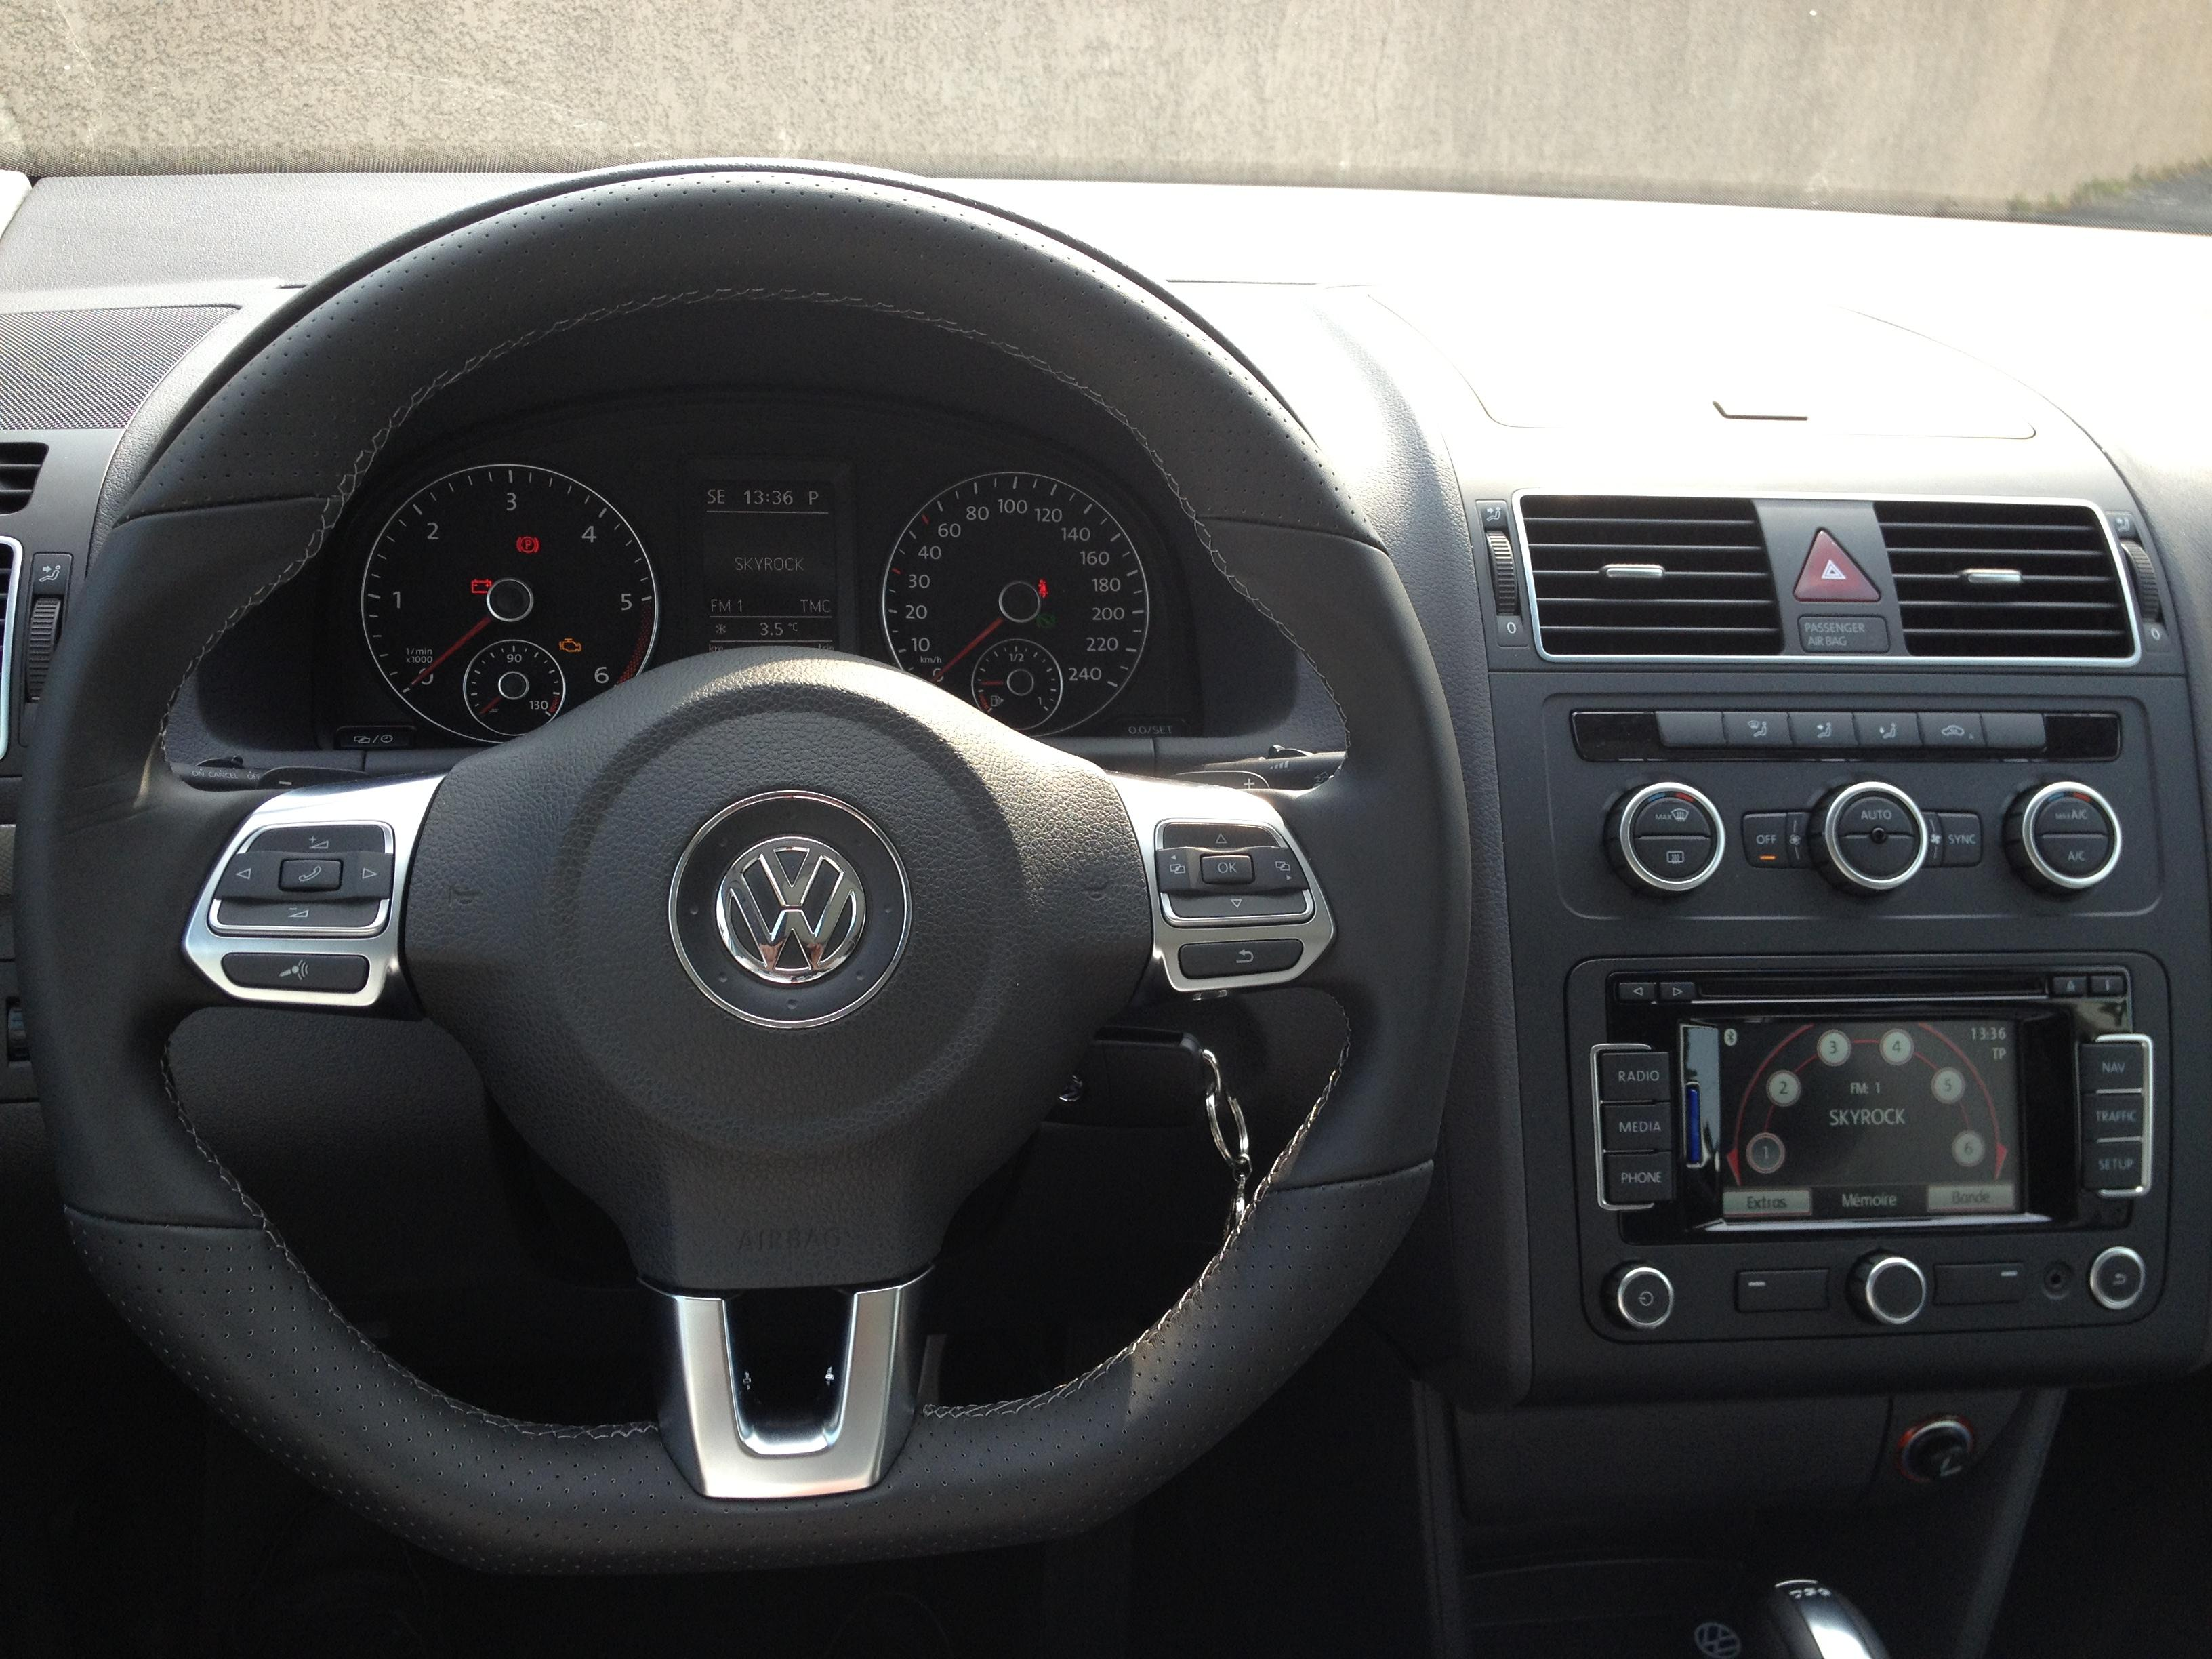 vw touran 2012 match tdi 105 dsg7 touran vendu autres v a g page 3 forum. Black Bedroom Furniture Sets. Home Design Ideas